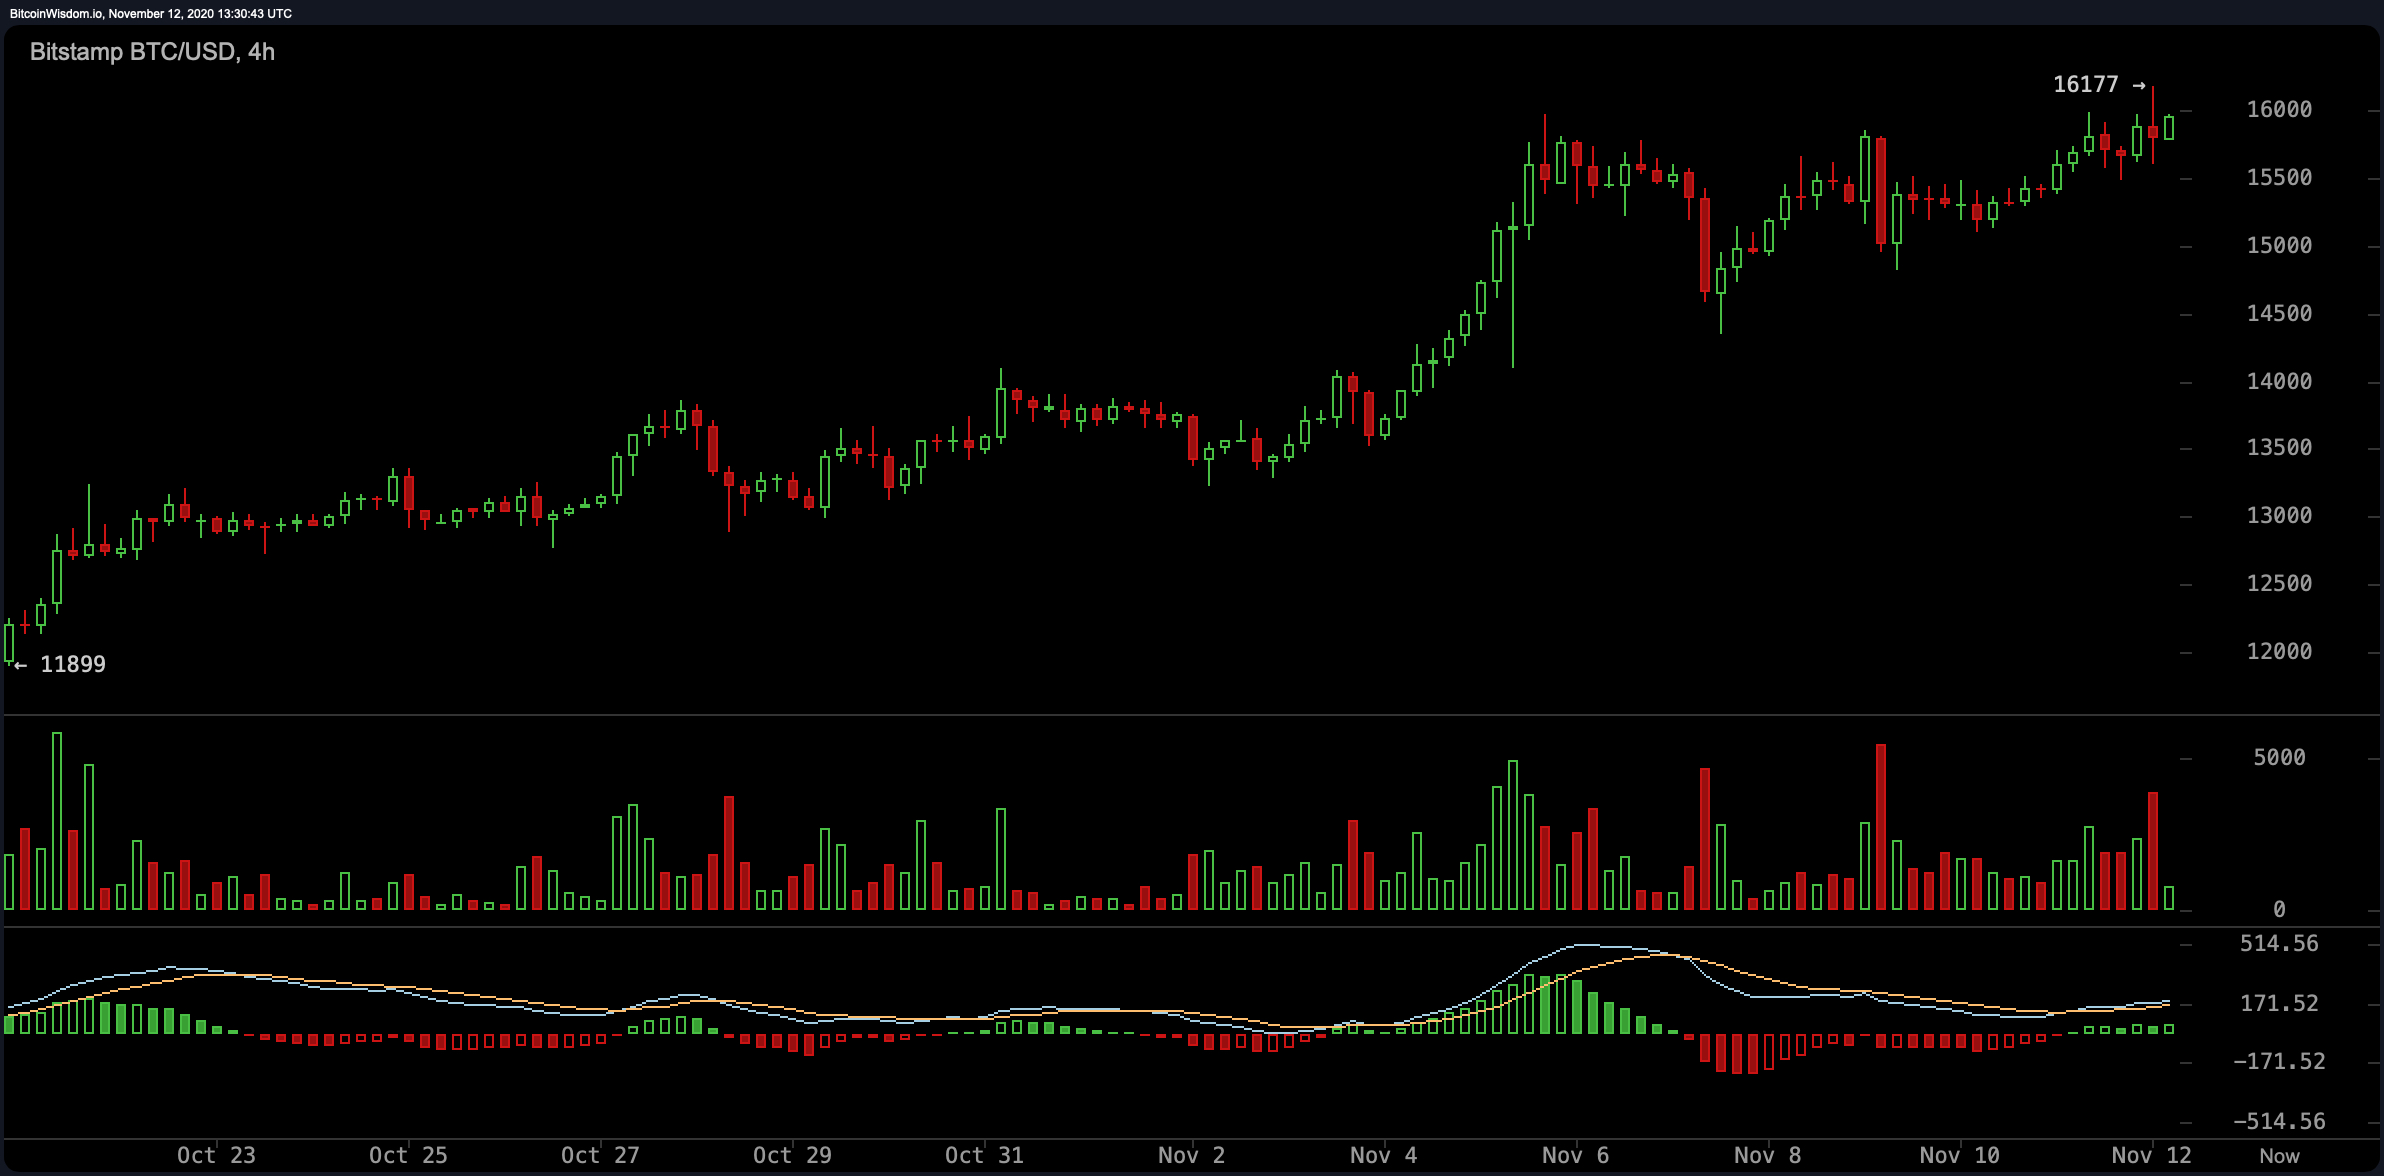 Market Update: Bitcoin Spikes Over $16K, RSI Levels Warm Up, Price Retracts for Another Attempt